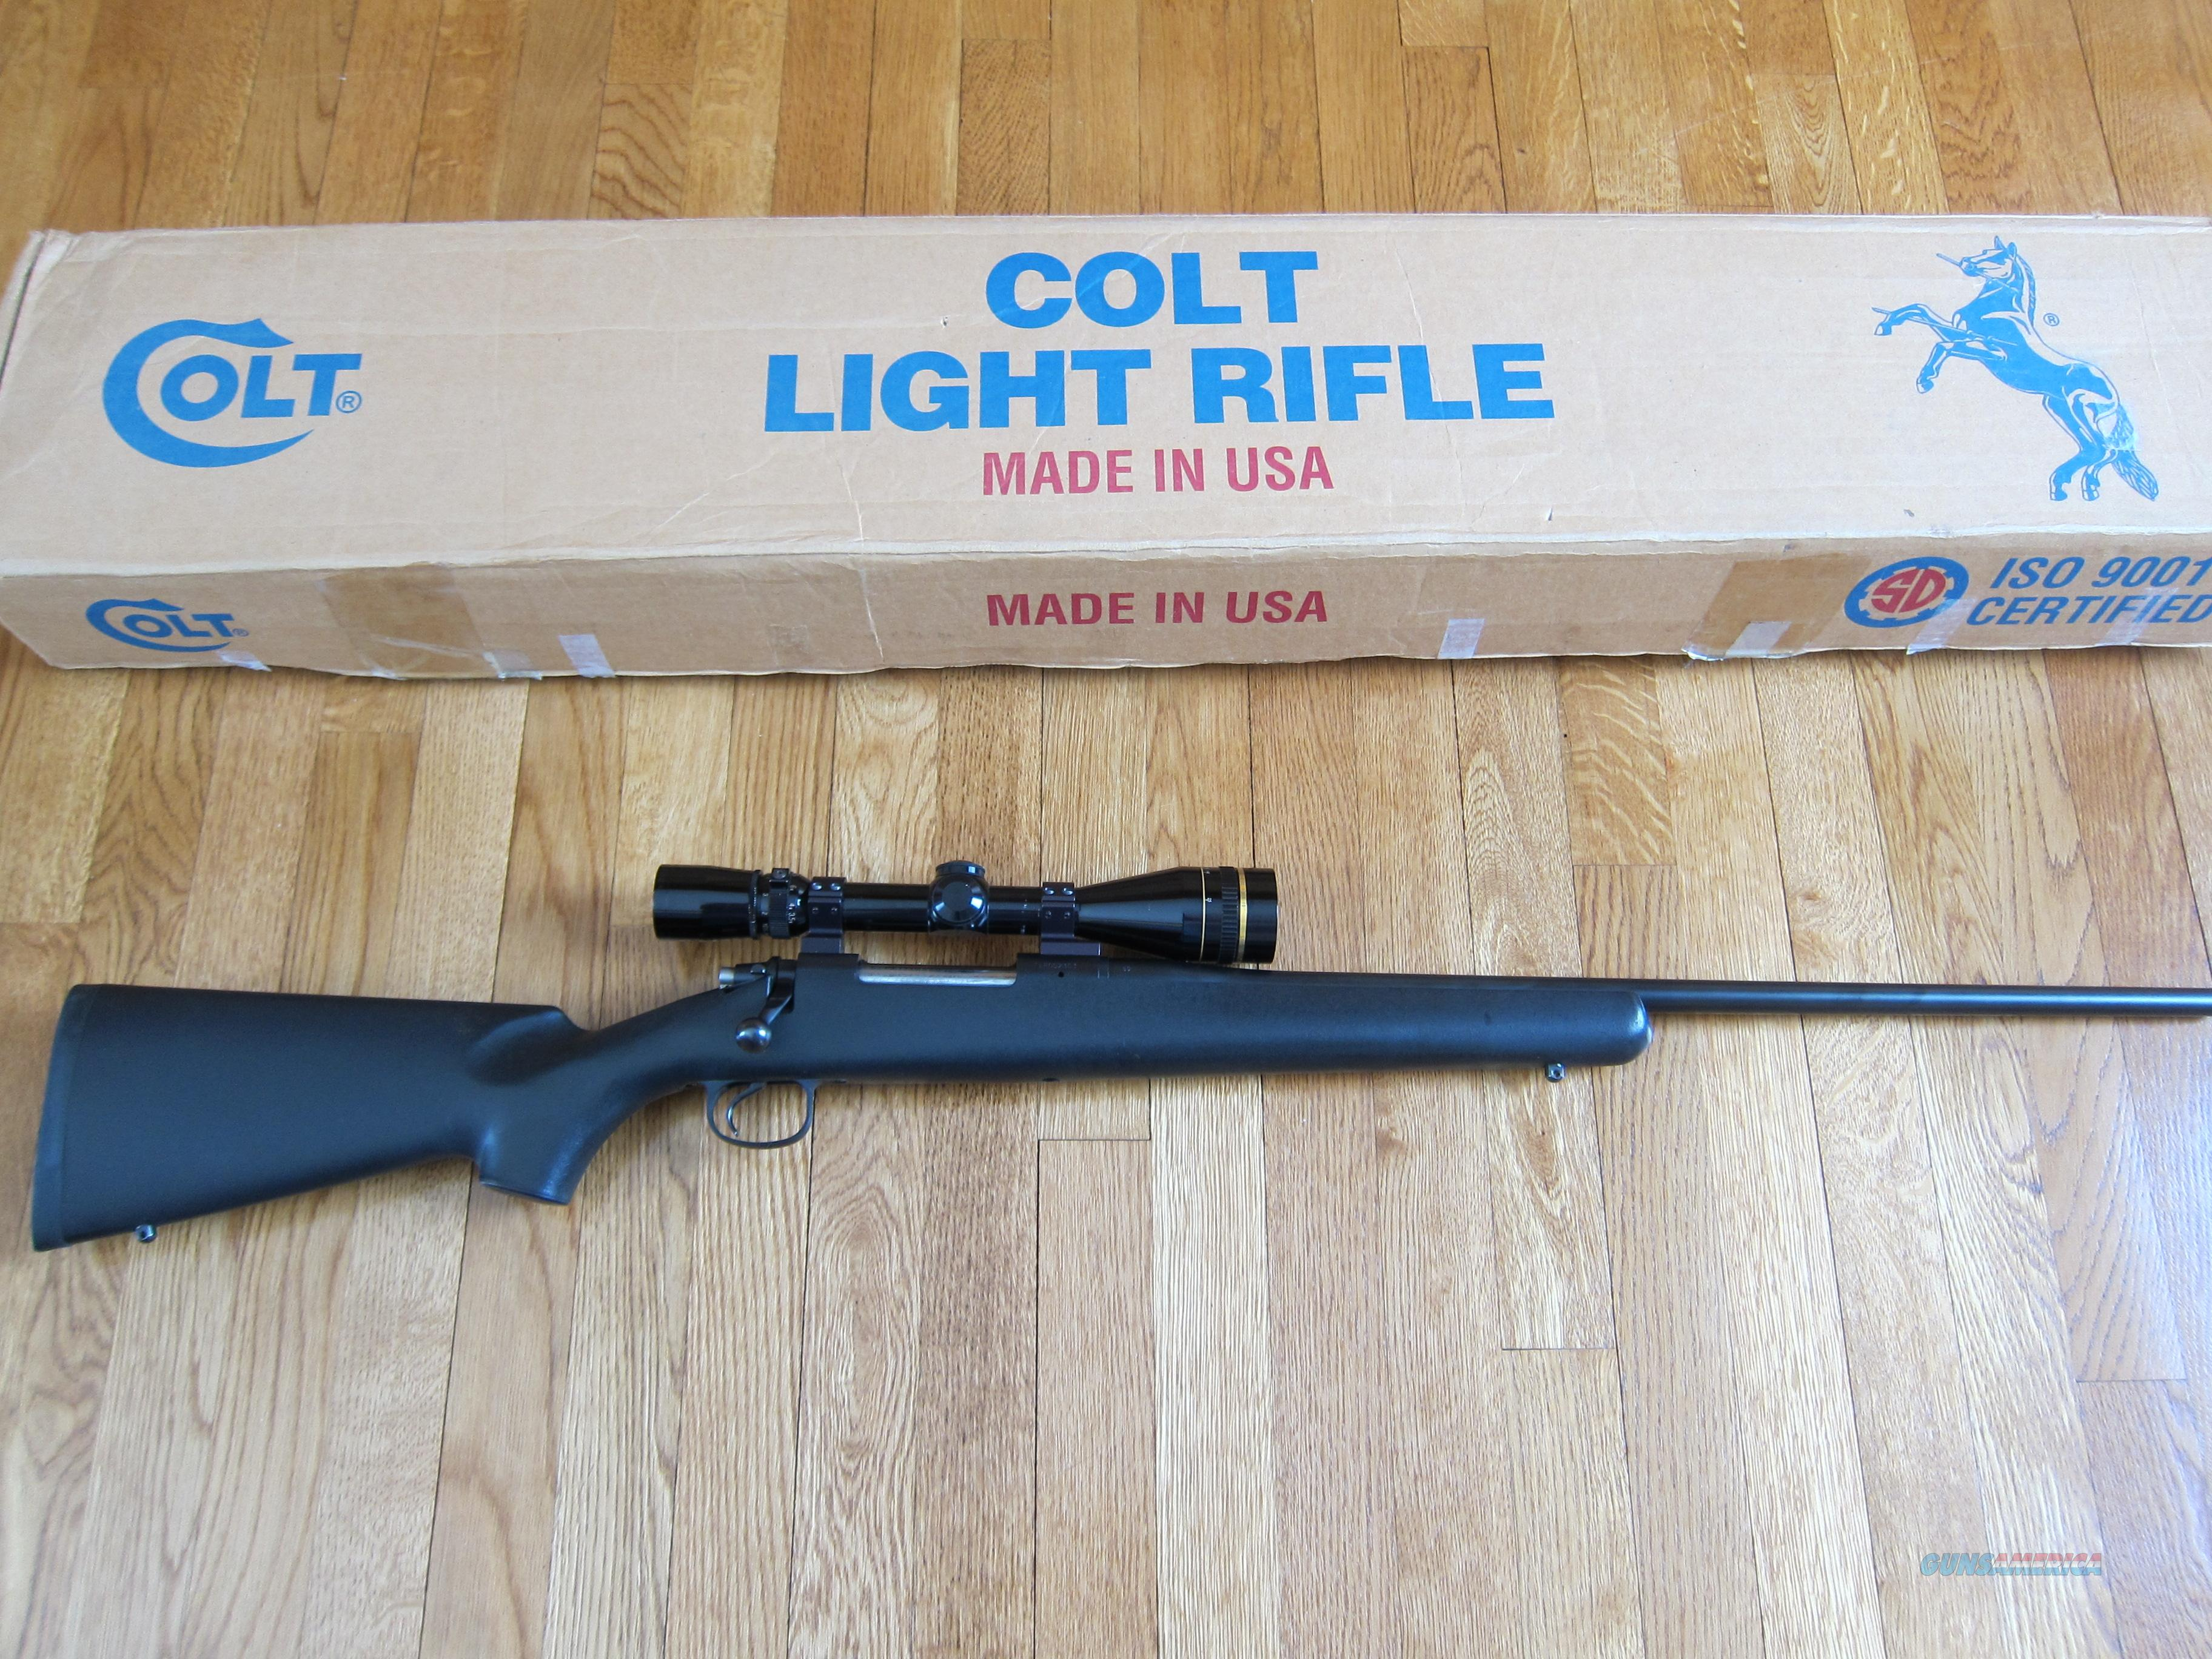 COLT LIGHT RIFLE, 30-06 (USED)  Guns > Rifles > Colt Rifles - Non-AR15 Modern Rifles